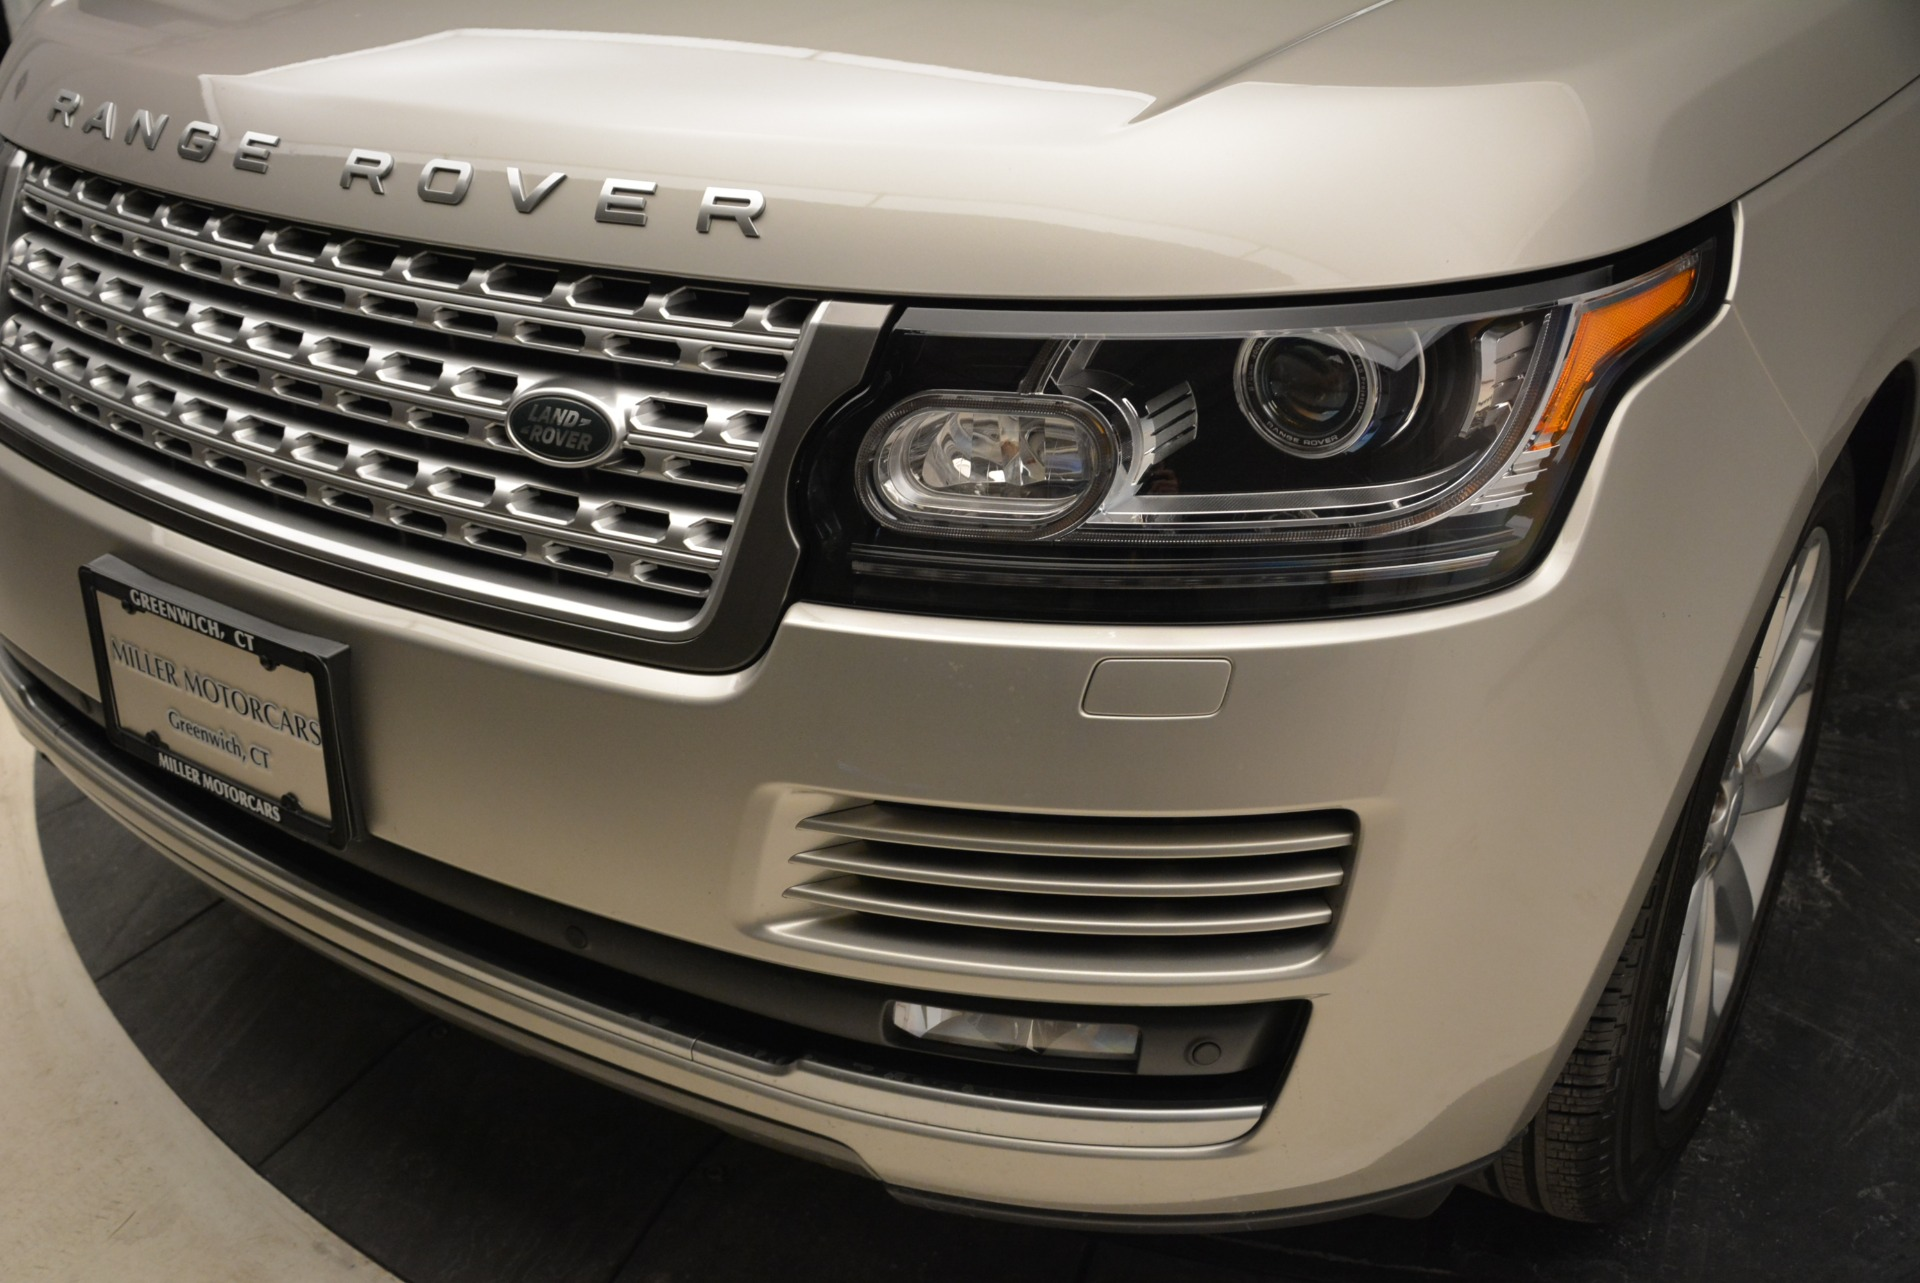 Used 2016 Land Rover Range Rover HSE For Sale 0 In Greenwich, CT